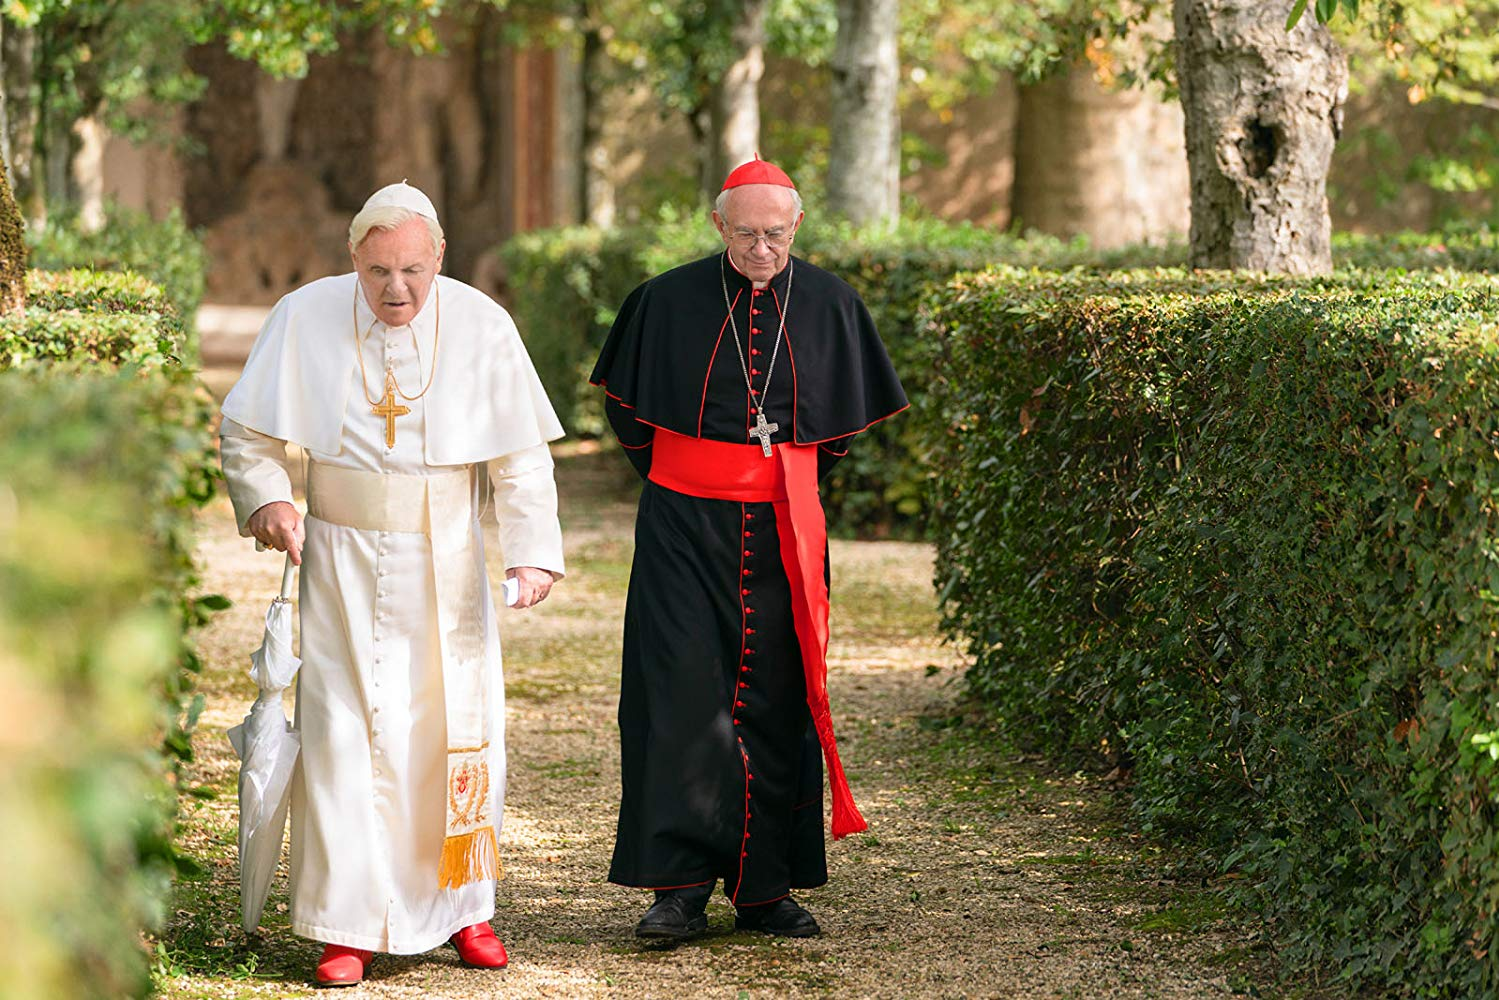 Anthony Hopkins e Jonathan Pryce interpretam Bento XVI e Francisco, respectivamente